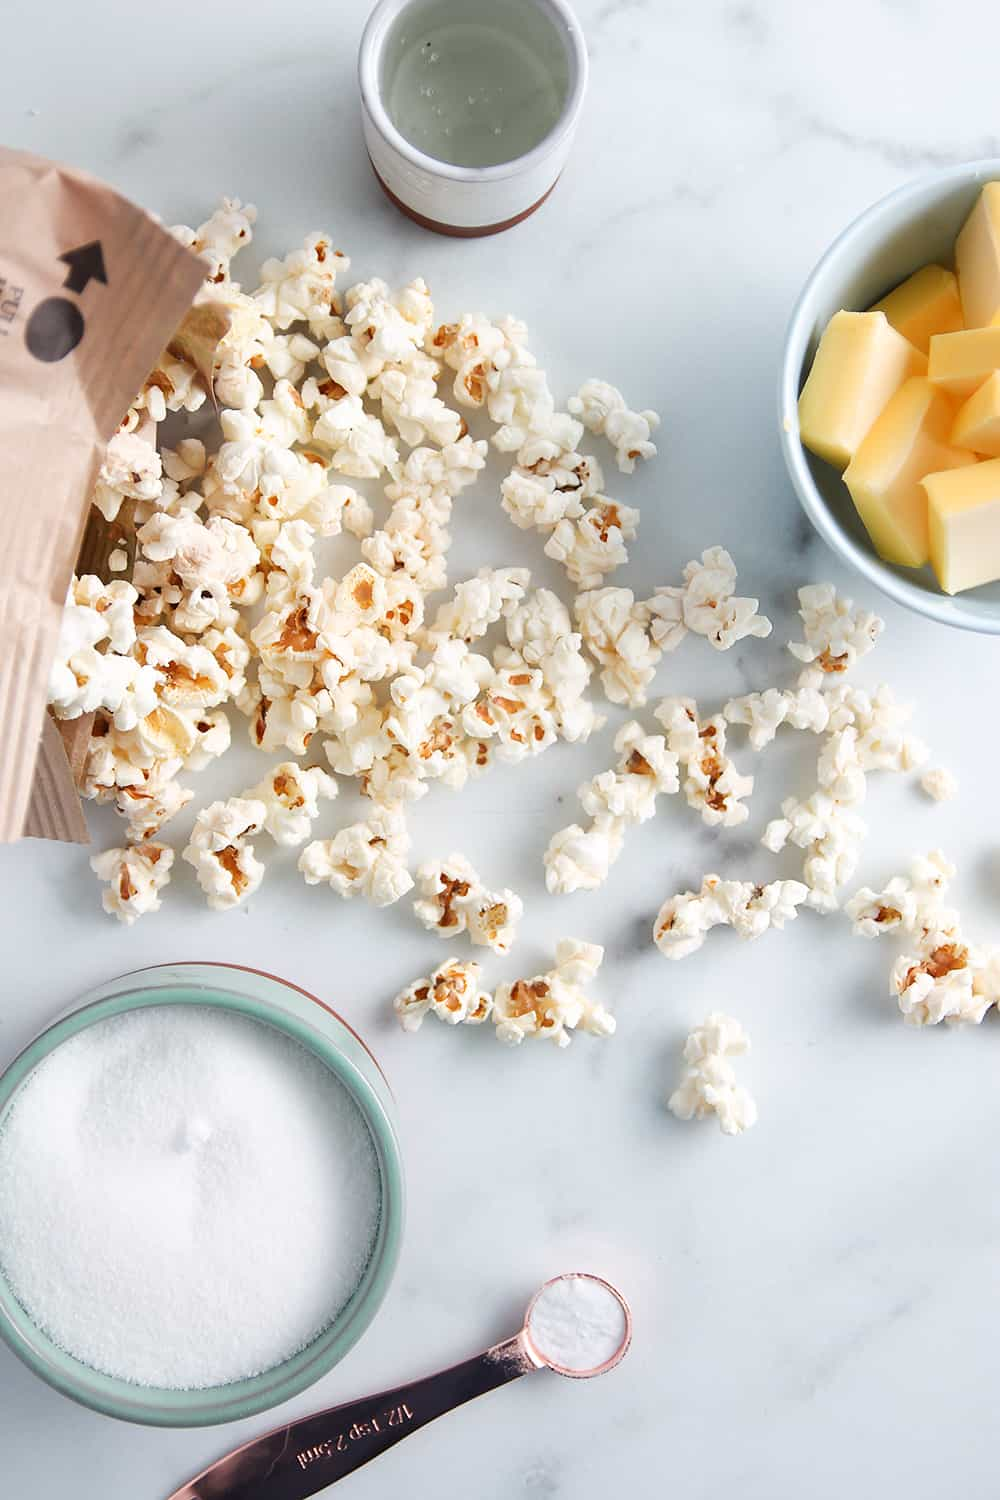 Ingredients for microwave caramel corn on a marble surface